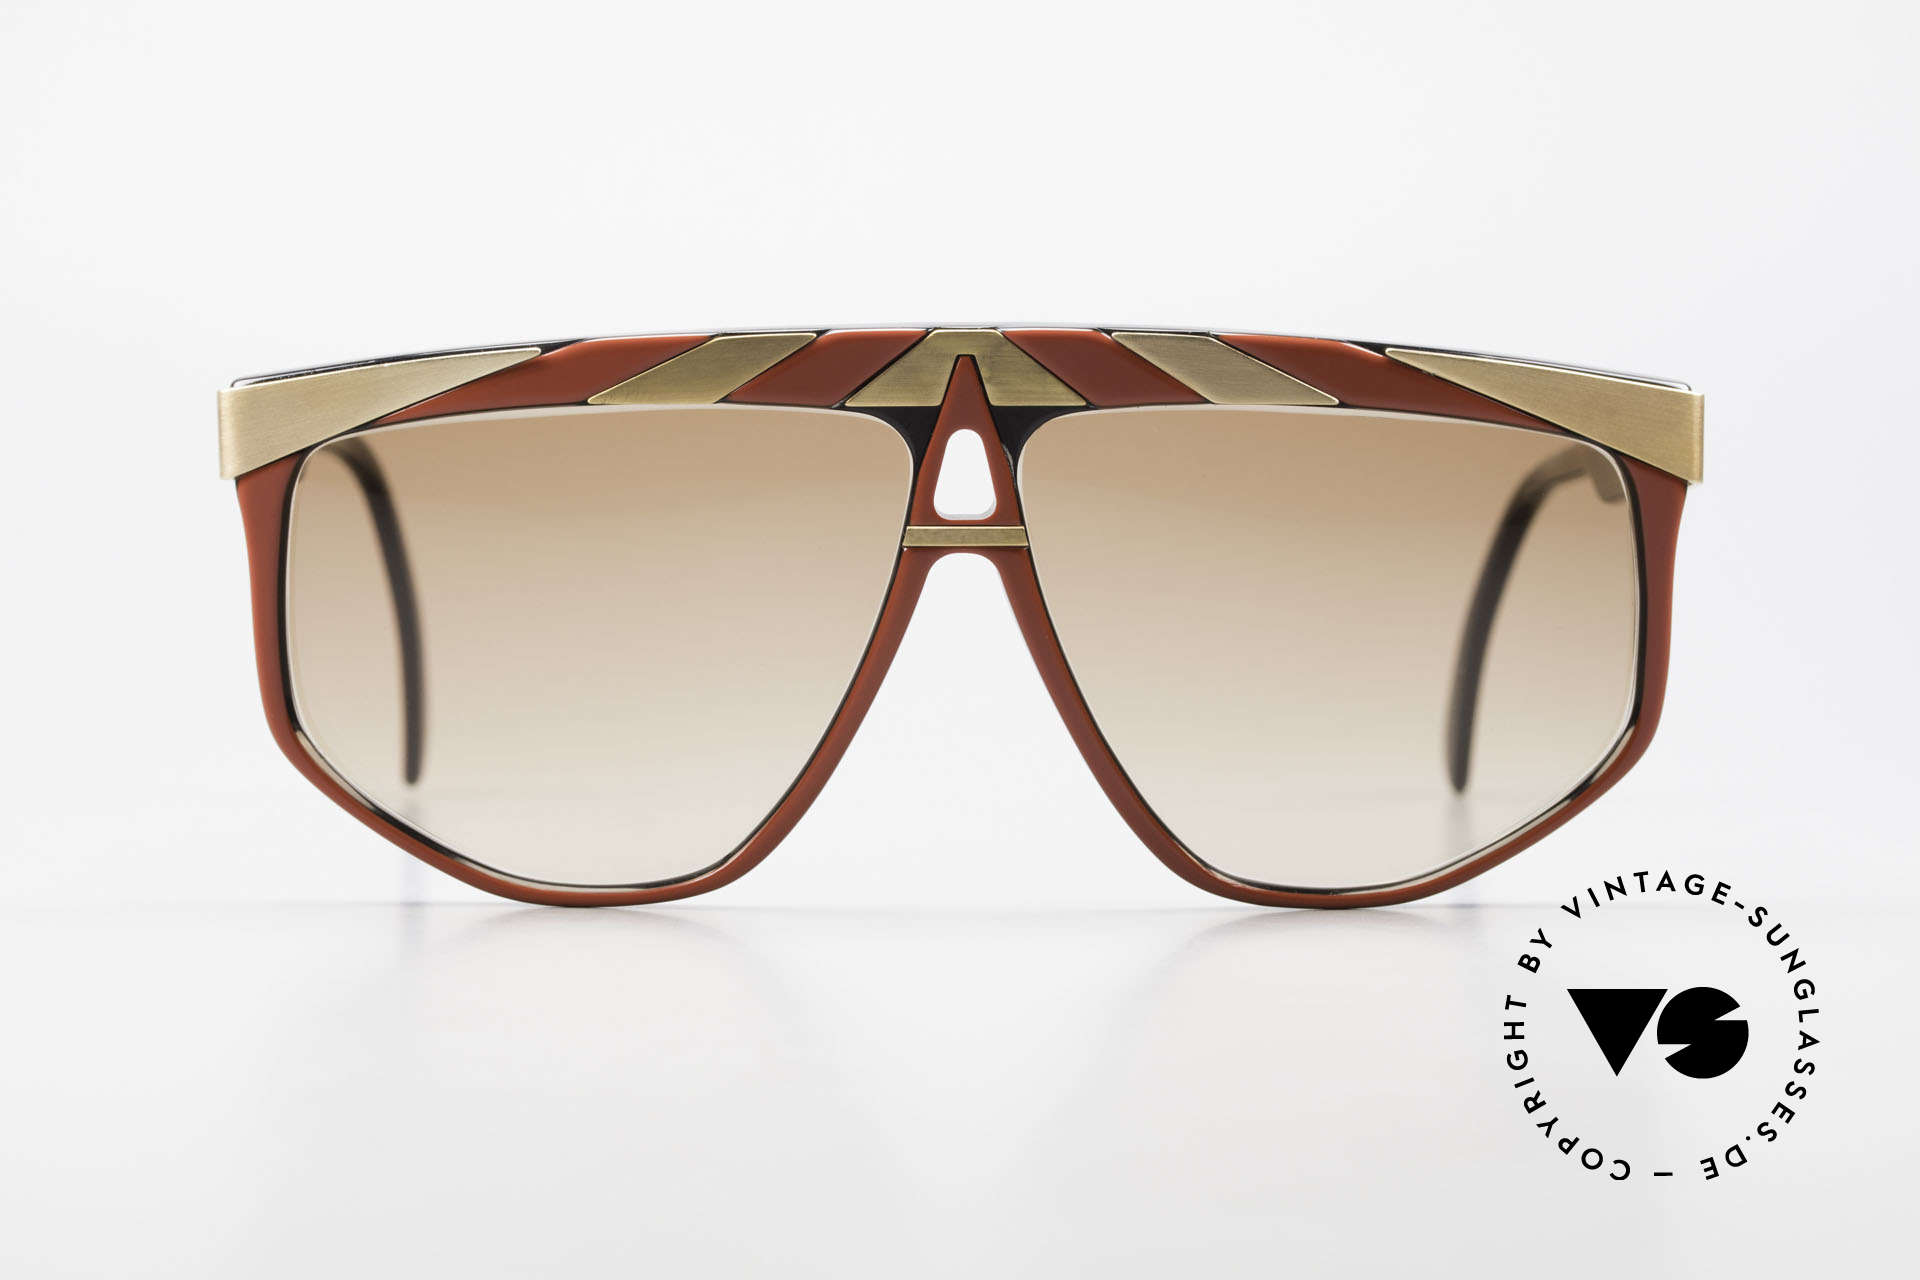 Alpina G82 Vintage Shades 80's Gold Plated, vintage model from the 'Genesis Project' by Alpina, Made for Men and Women